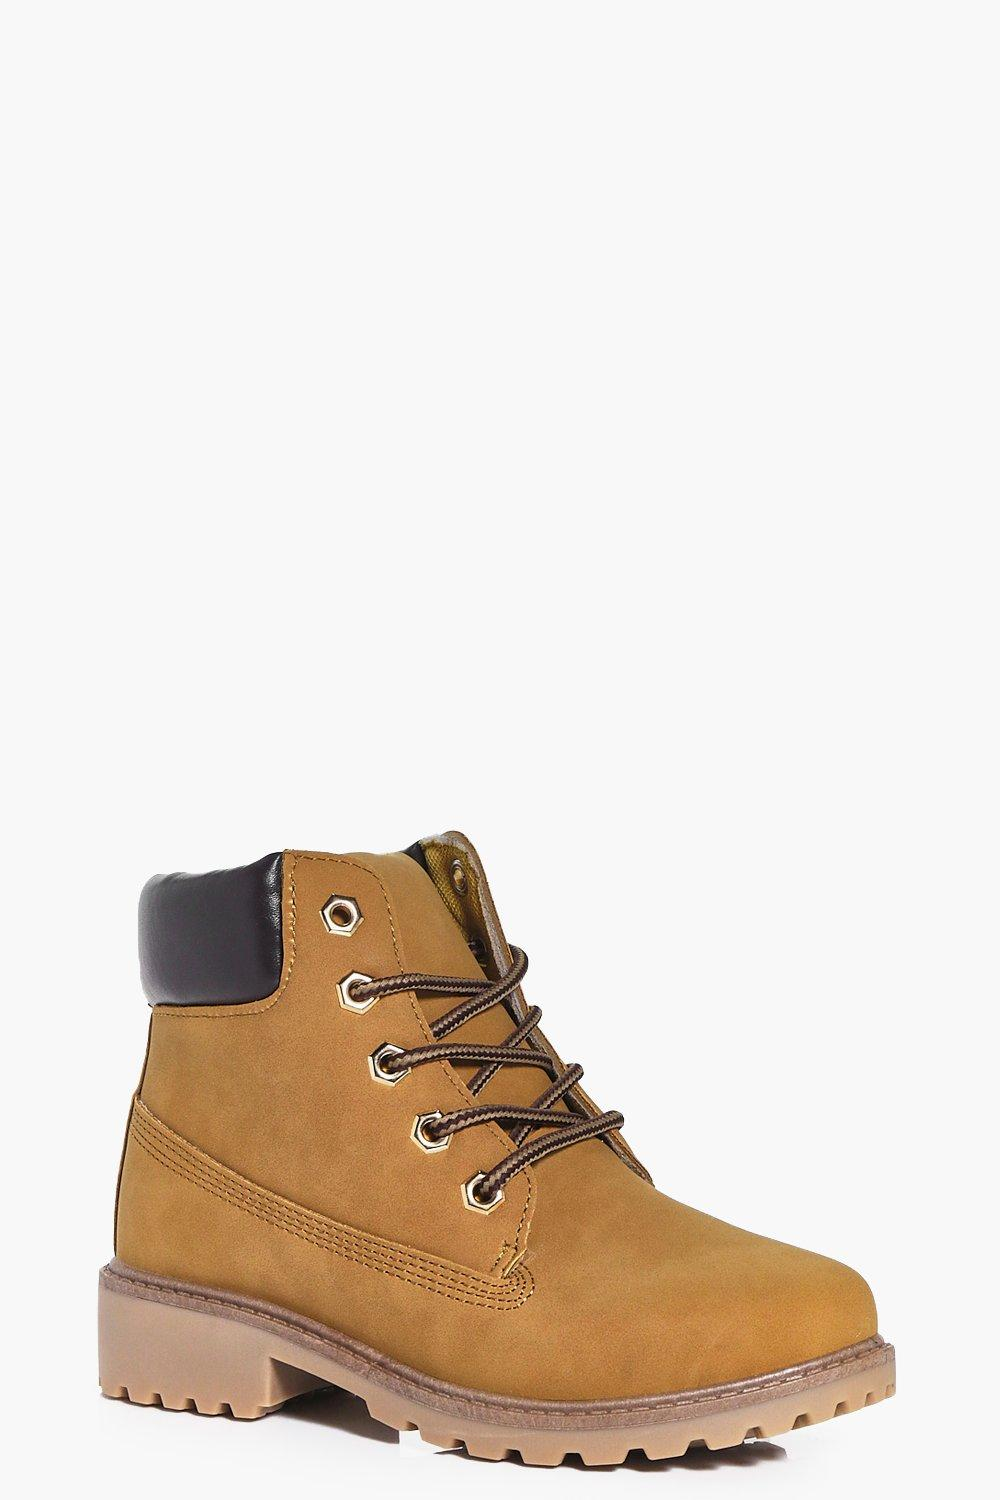 Girls Lace Up Hiker Boots